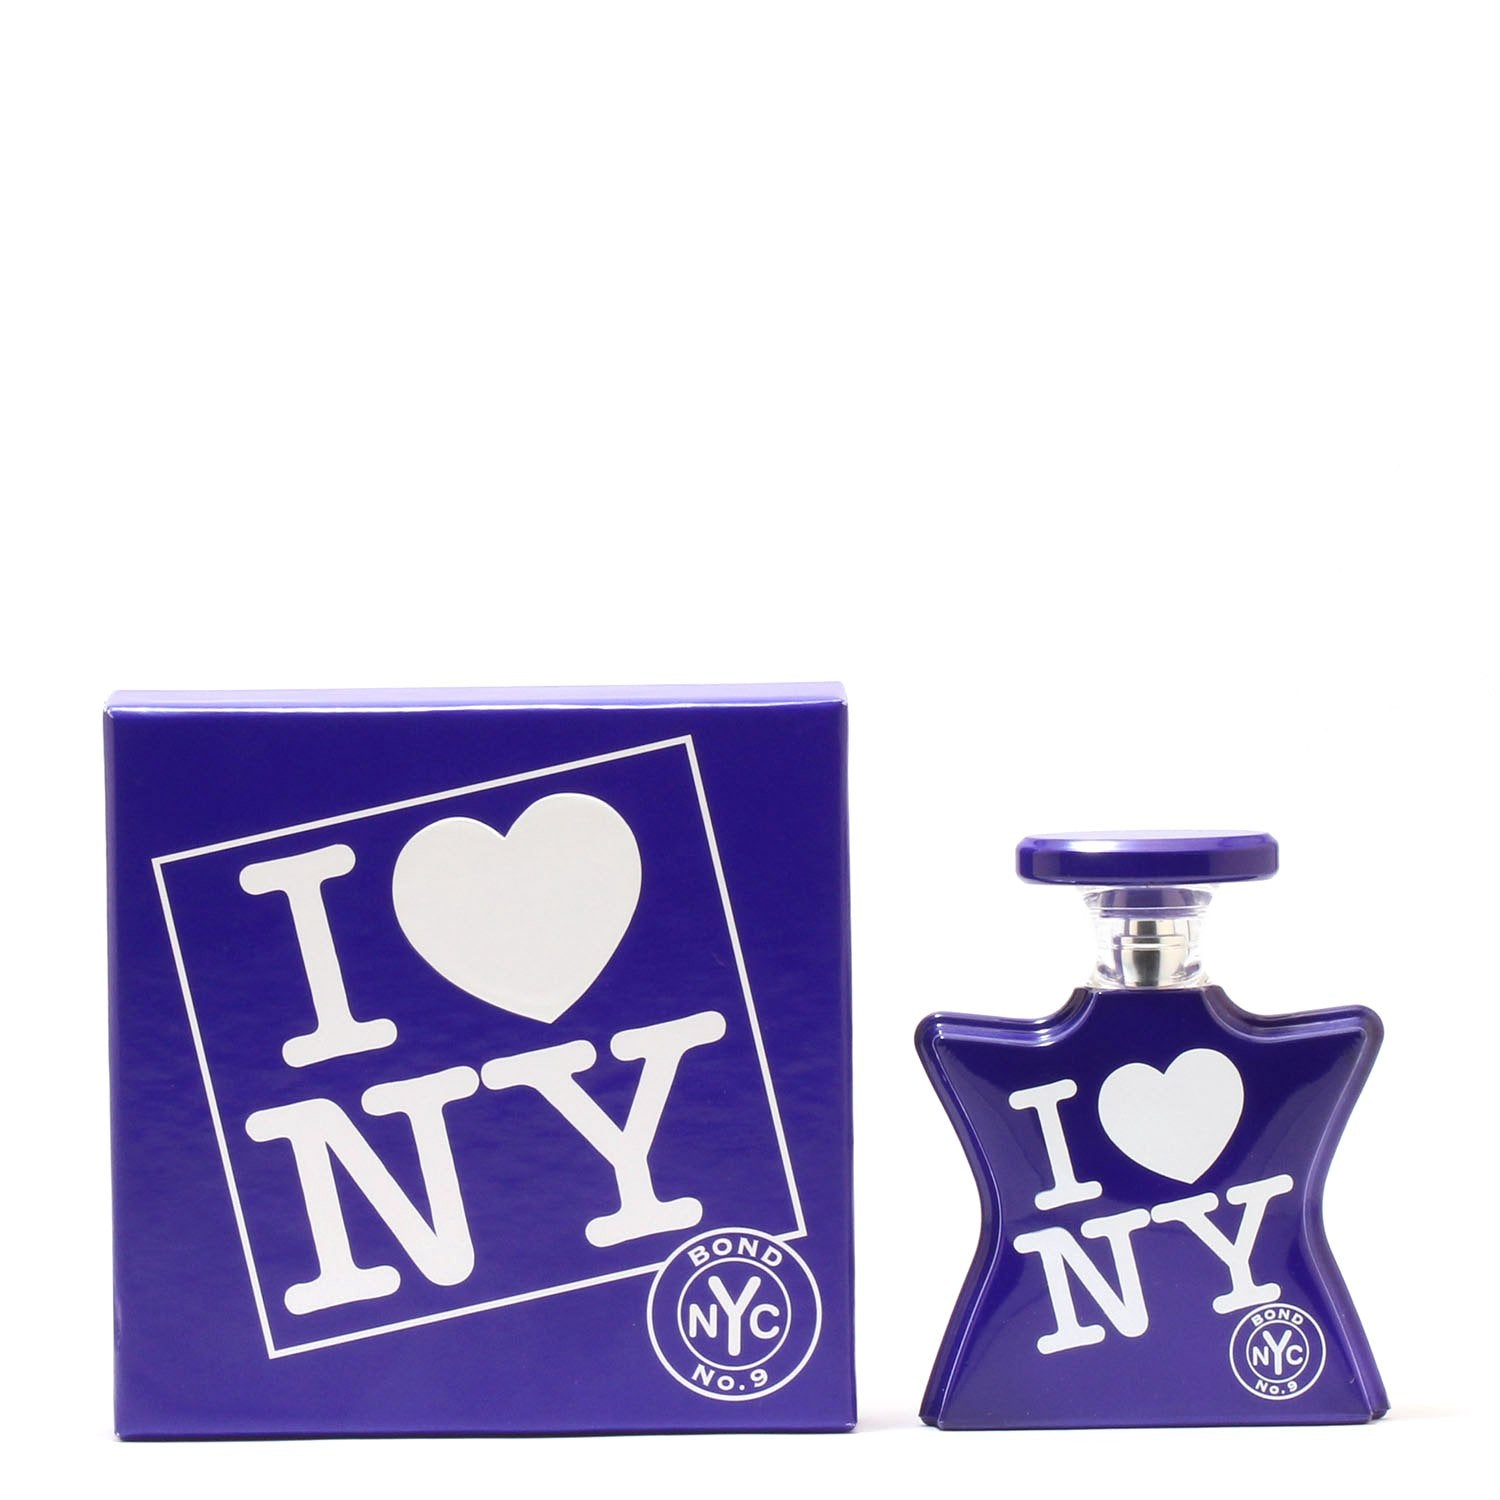 641df3f39ff2 Perfume - BOND NO 9 I LOVE NEW YORK HOLIDAYS UNISEX - EAU DE PARFUM SPRAY